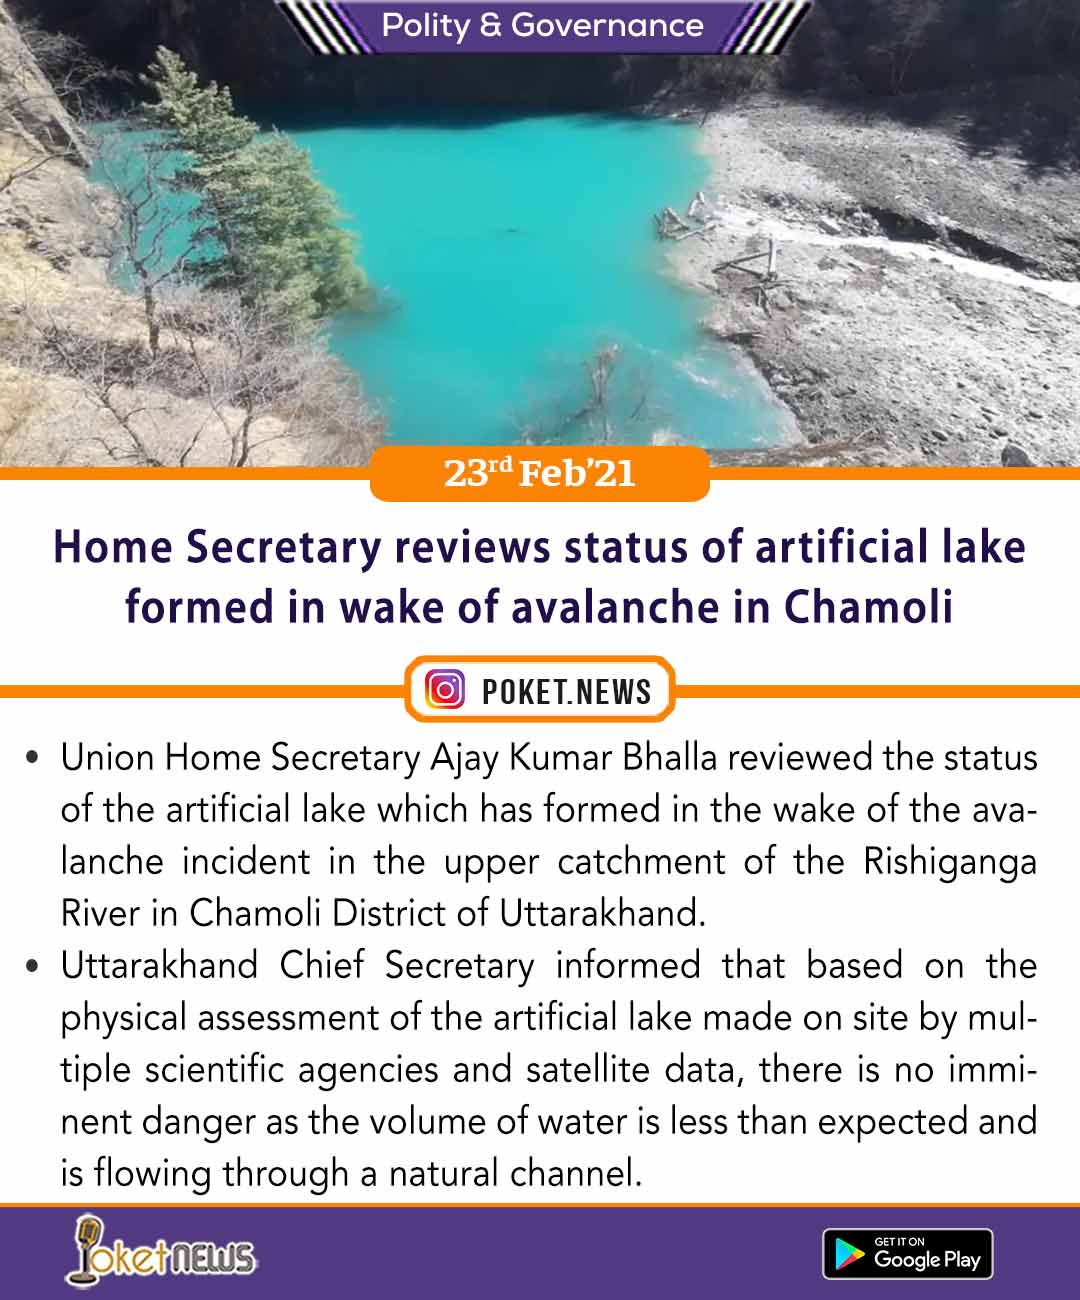 Home Secretary reviews status of artificial lake formed in wake of avalanche in Chamoli